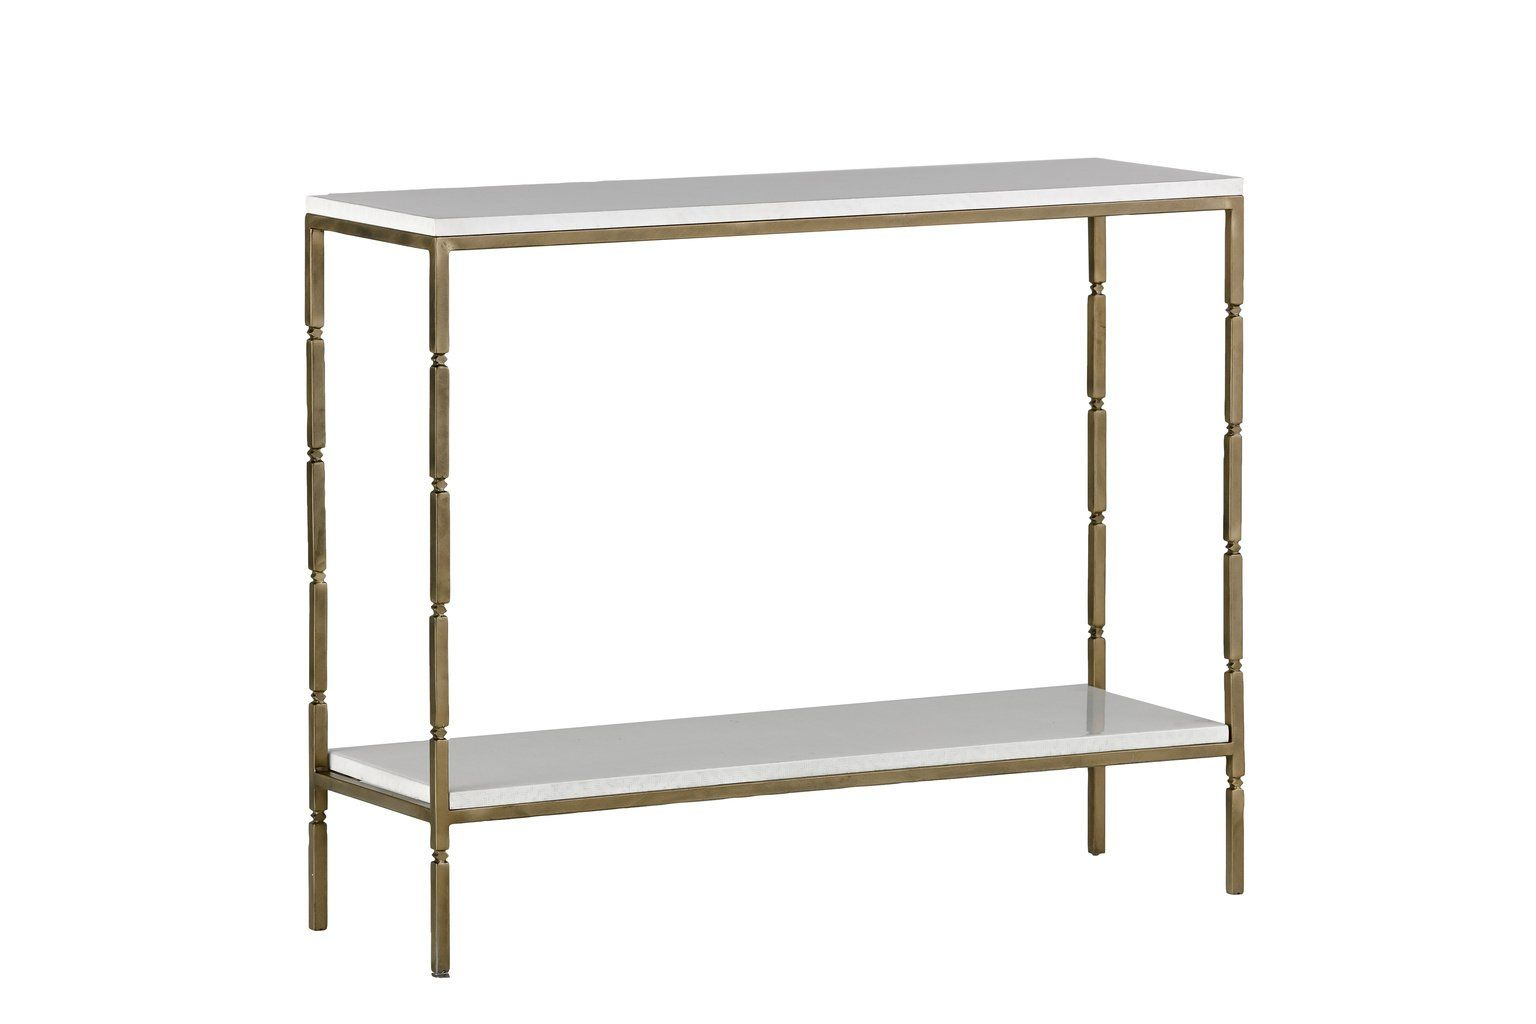 Bryson Console | Products | Pinterest | Consoles And Products With Clairemont Demilune Console Tables (View 4 of 30)